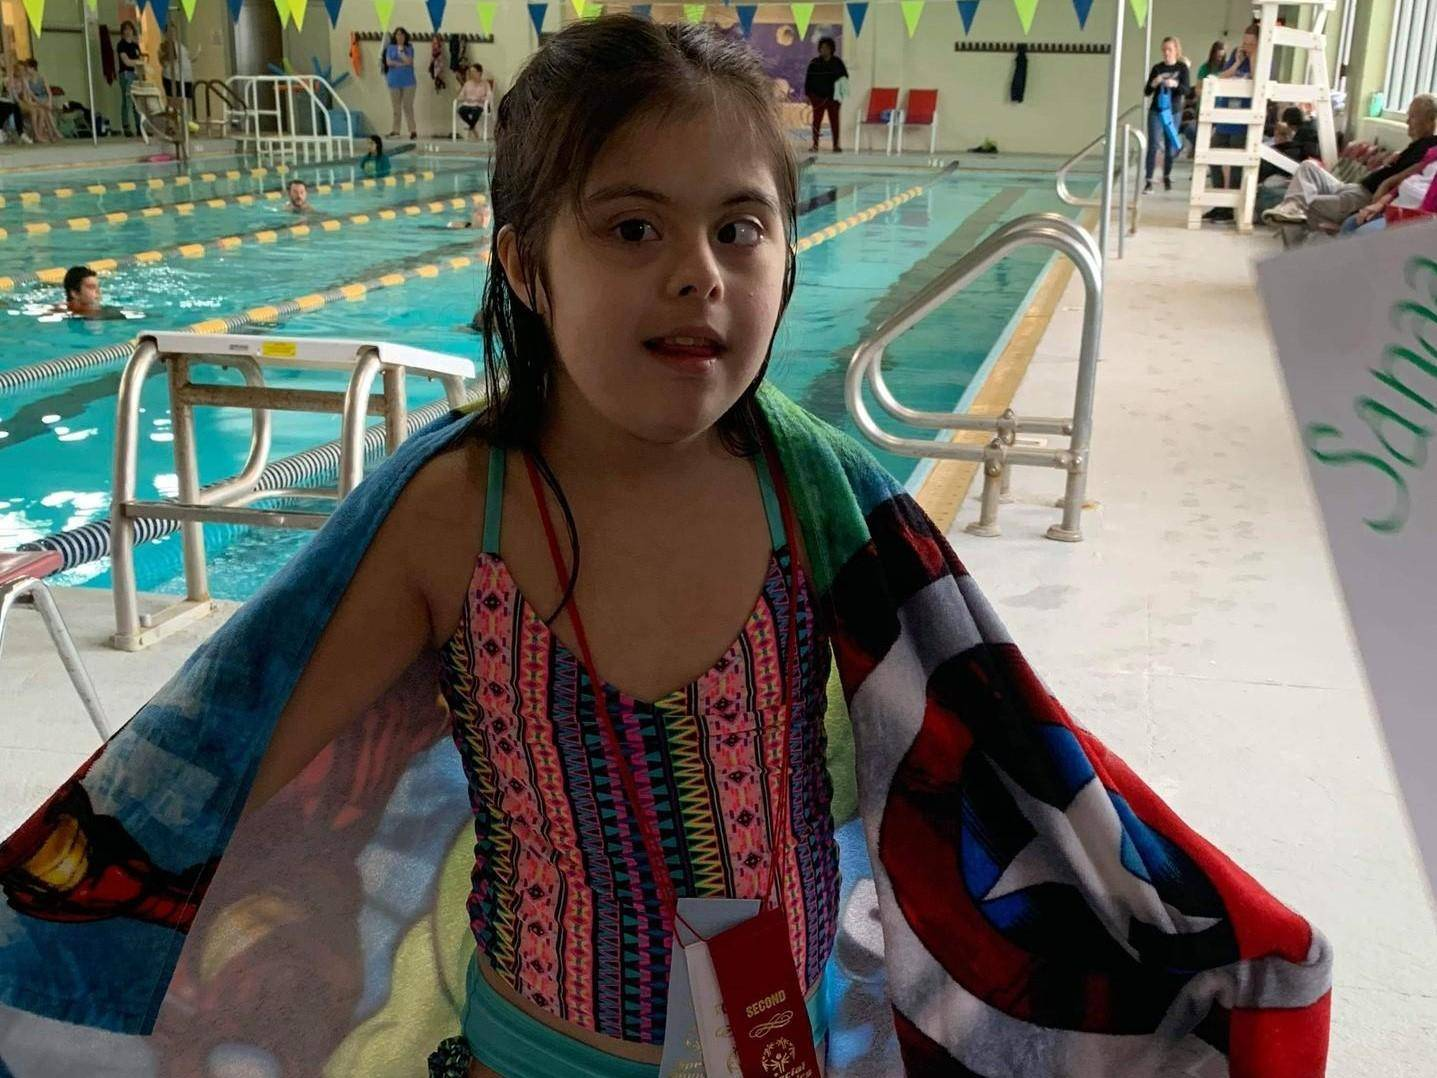 Student at the swimming pool